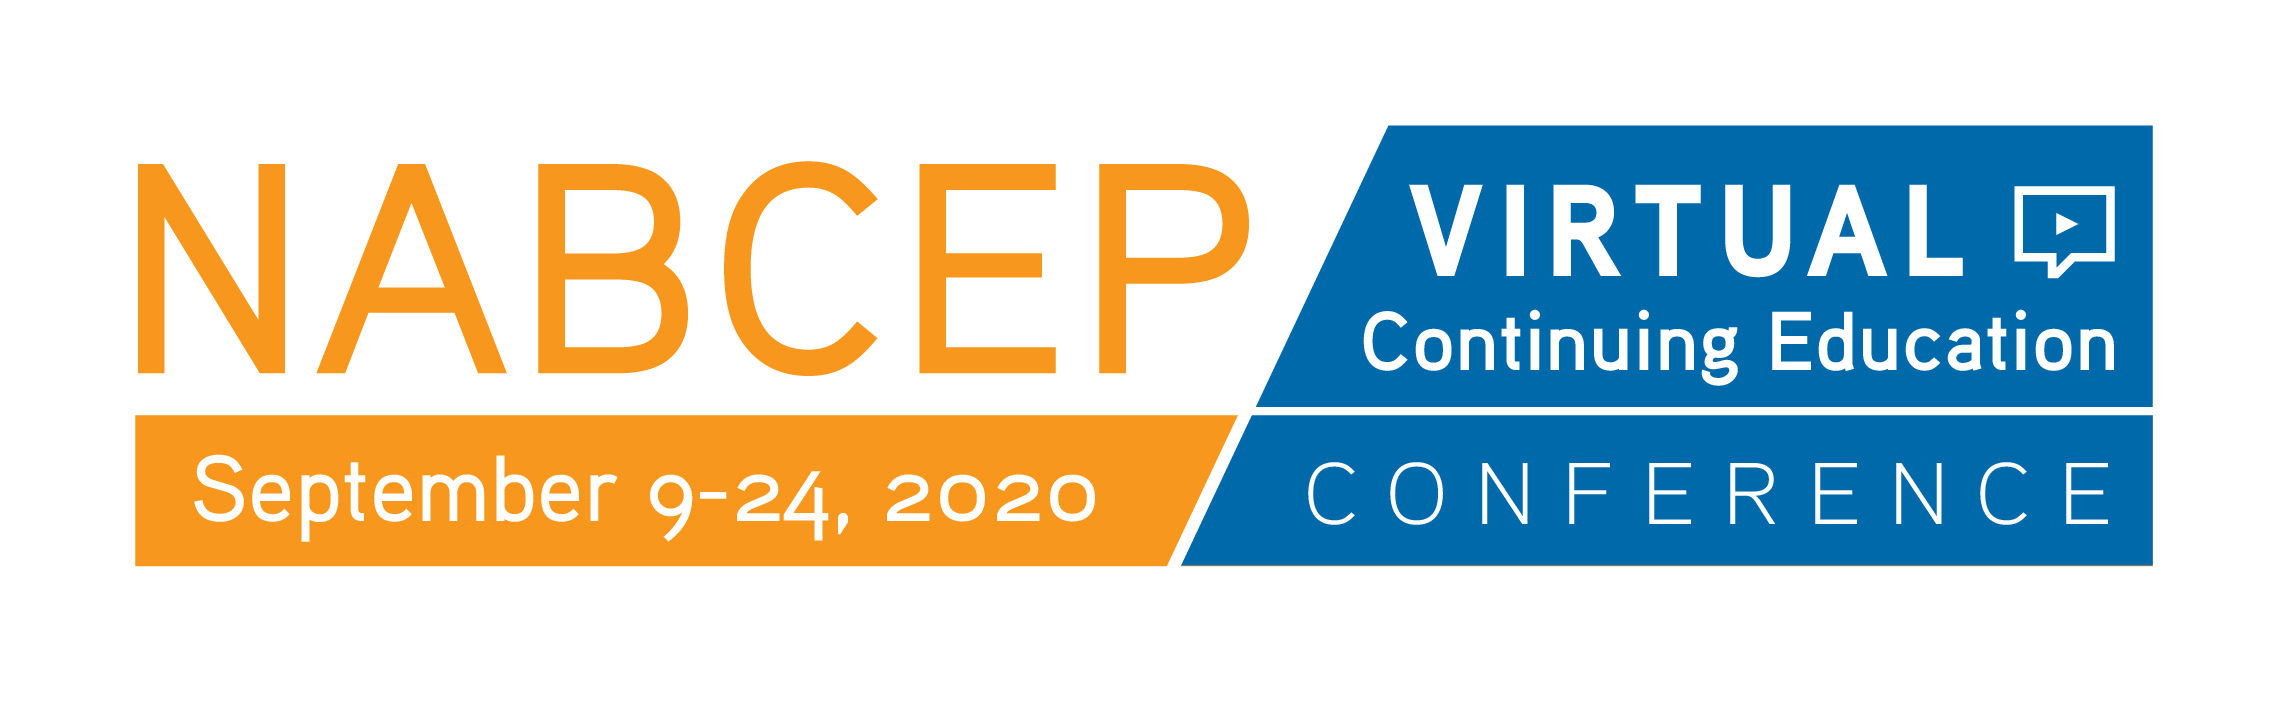 NABCEP Solar Education Conference Moves to Virtual Learning Platform